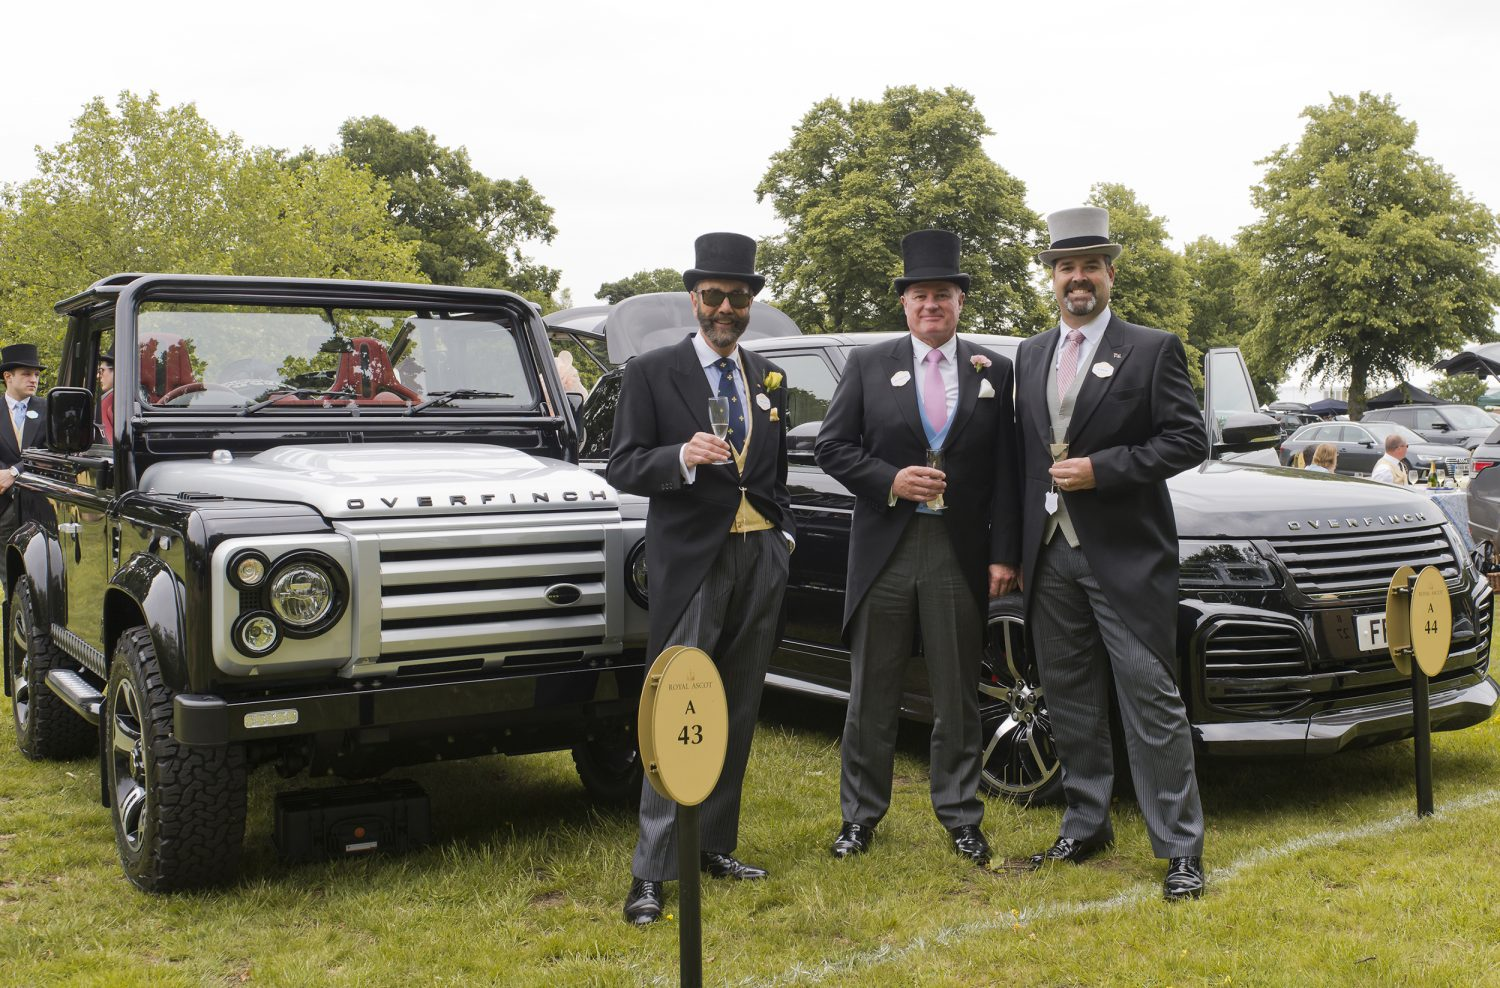 Overfinch at Royal Ascot - Overfinch US